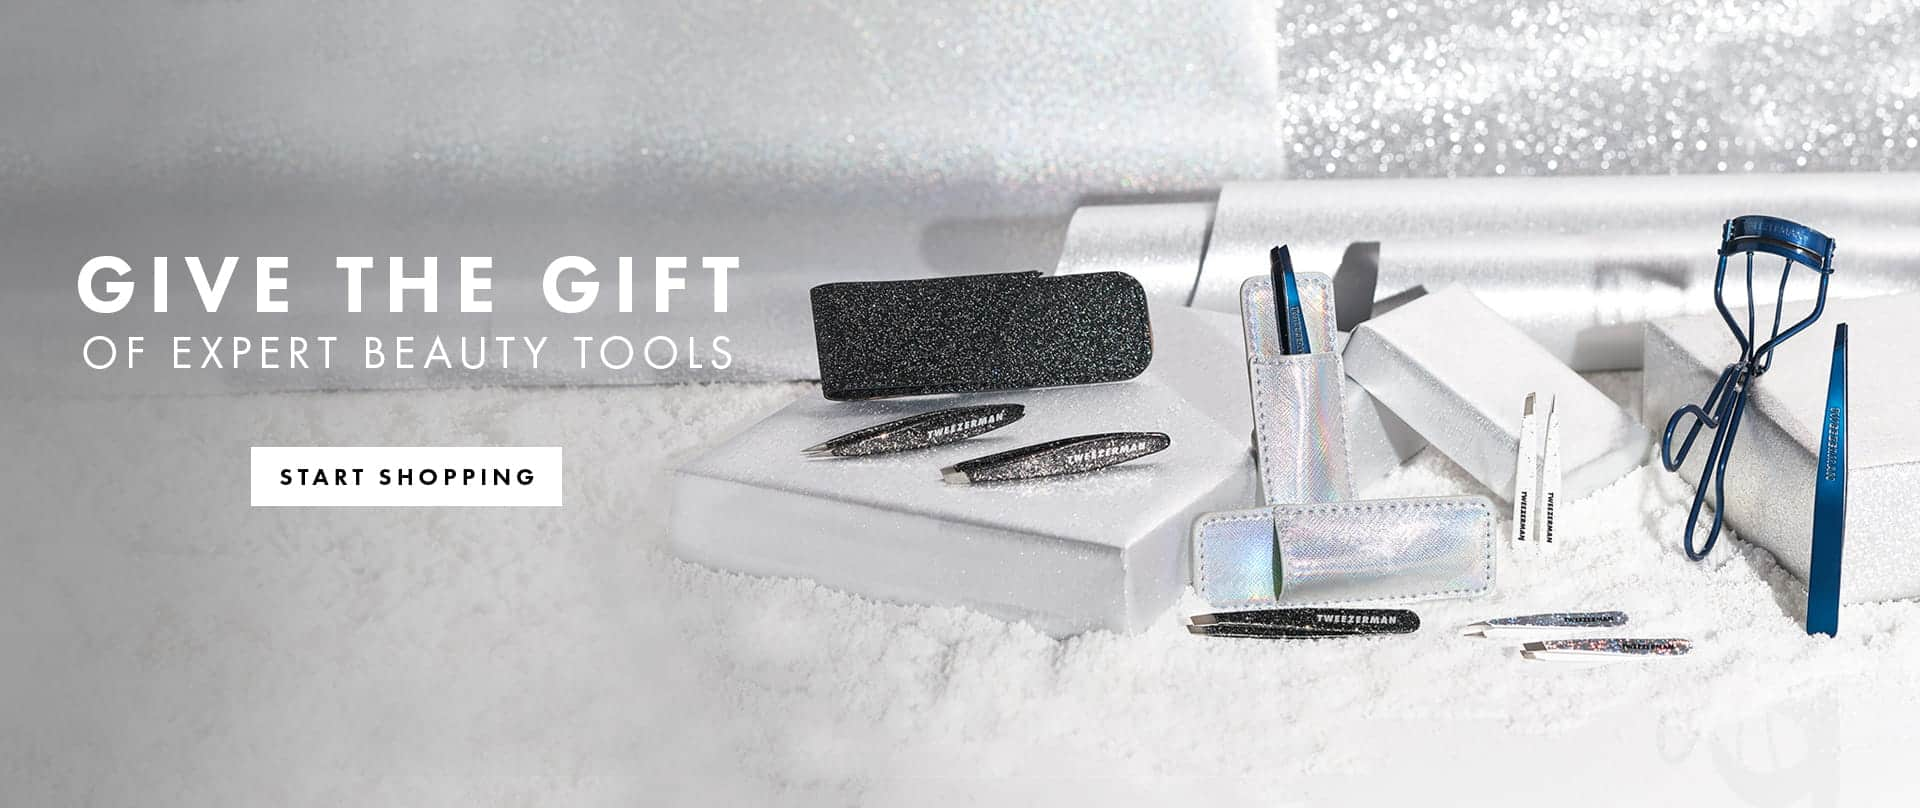 A collection of Tweezerman's holiday beauty tools featuring tweezers, curlers and gift sets in festive patterns.